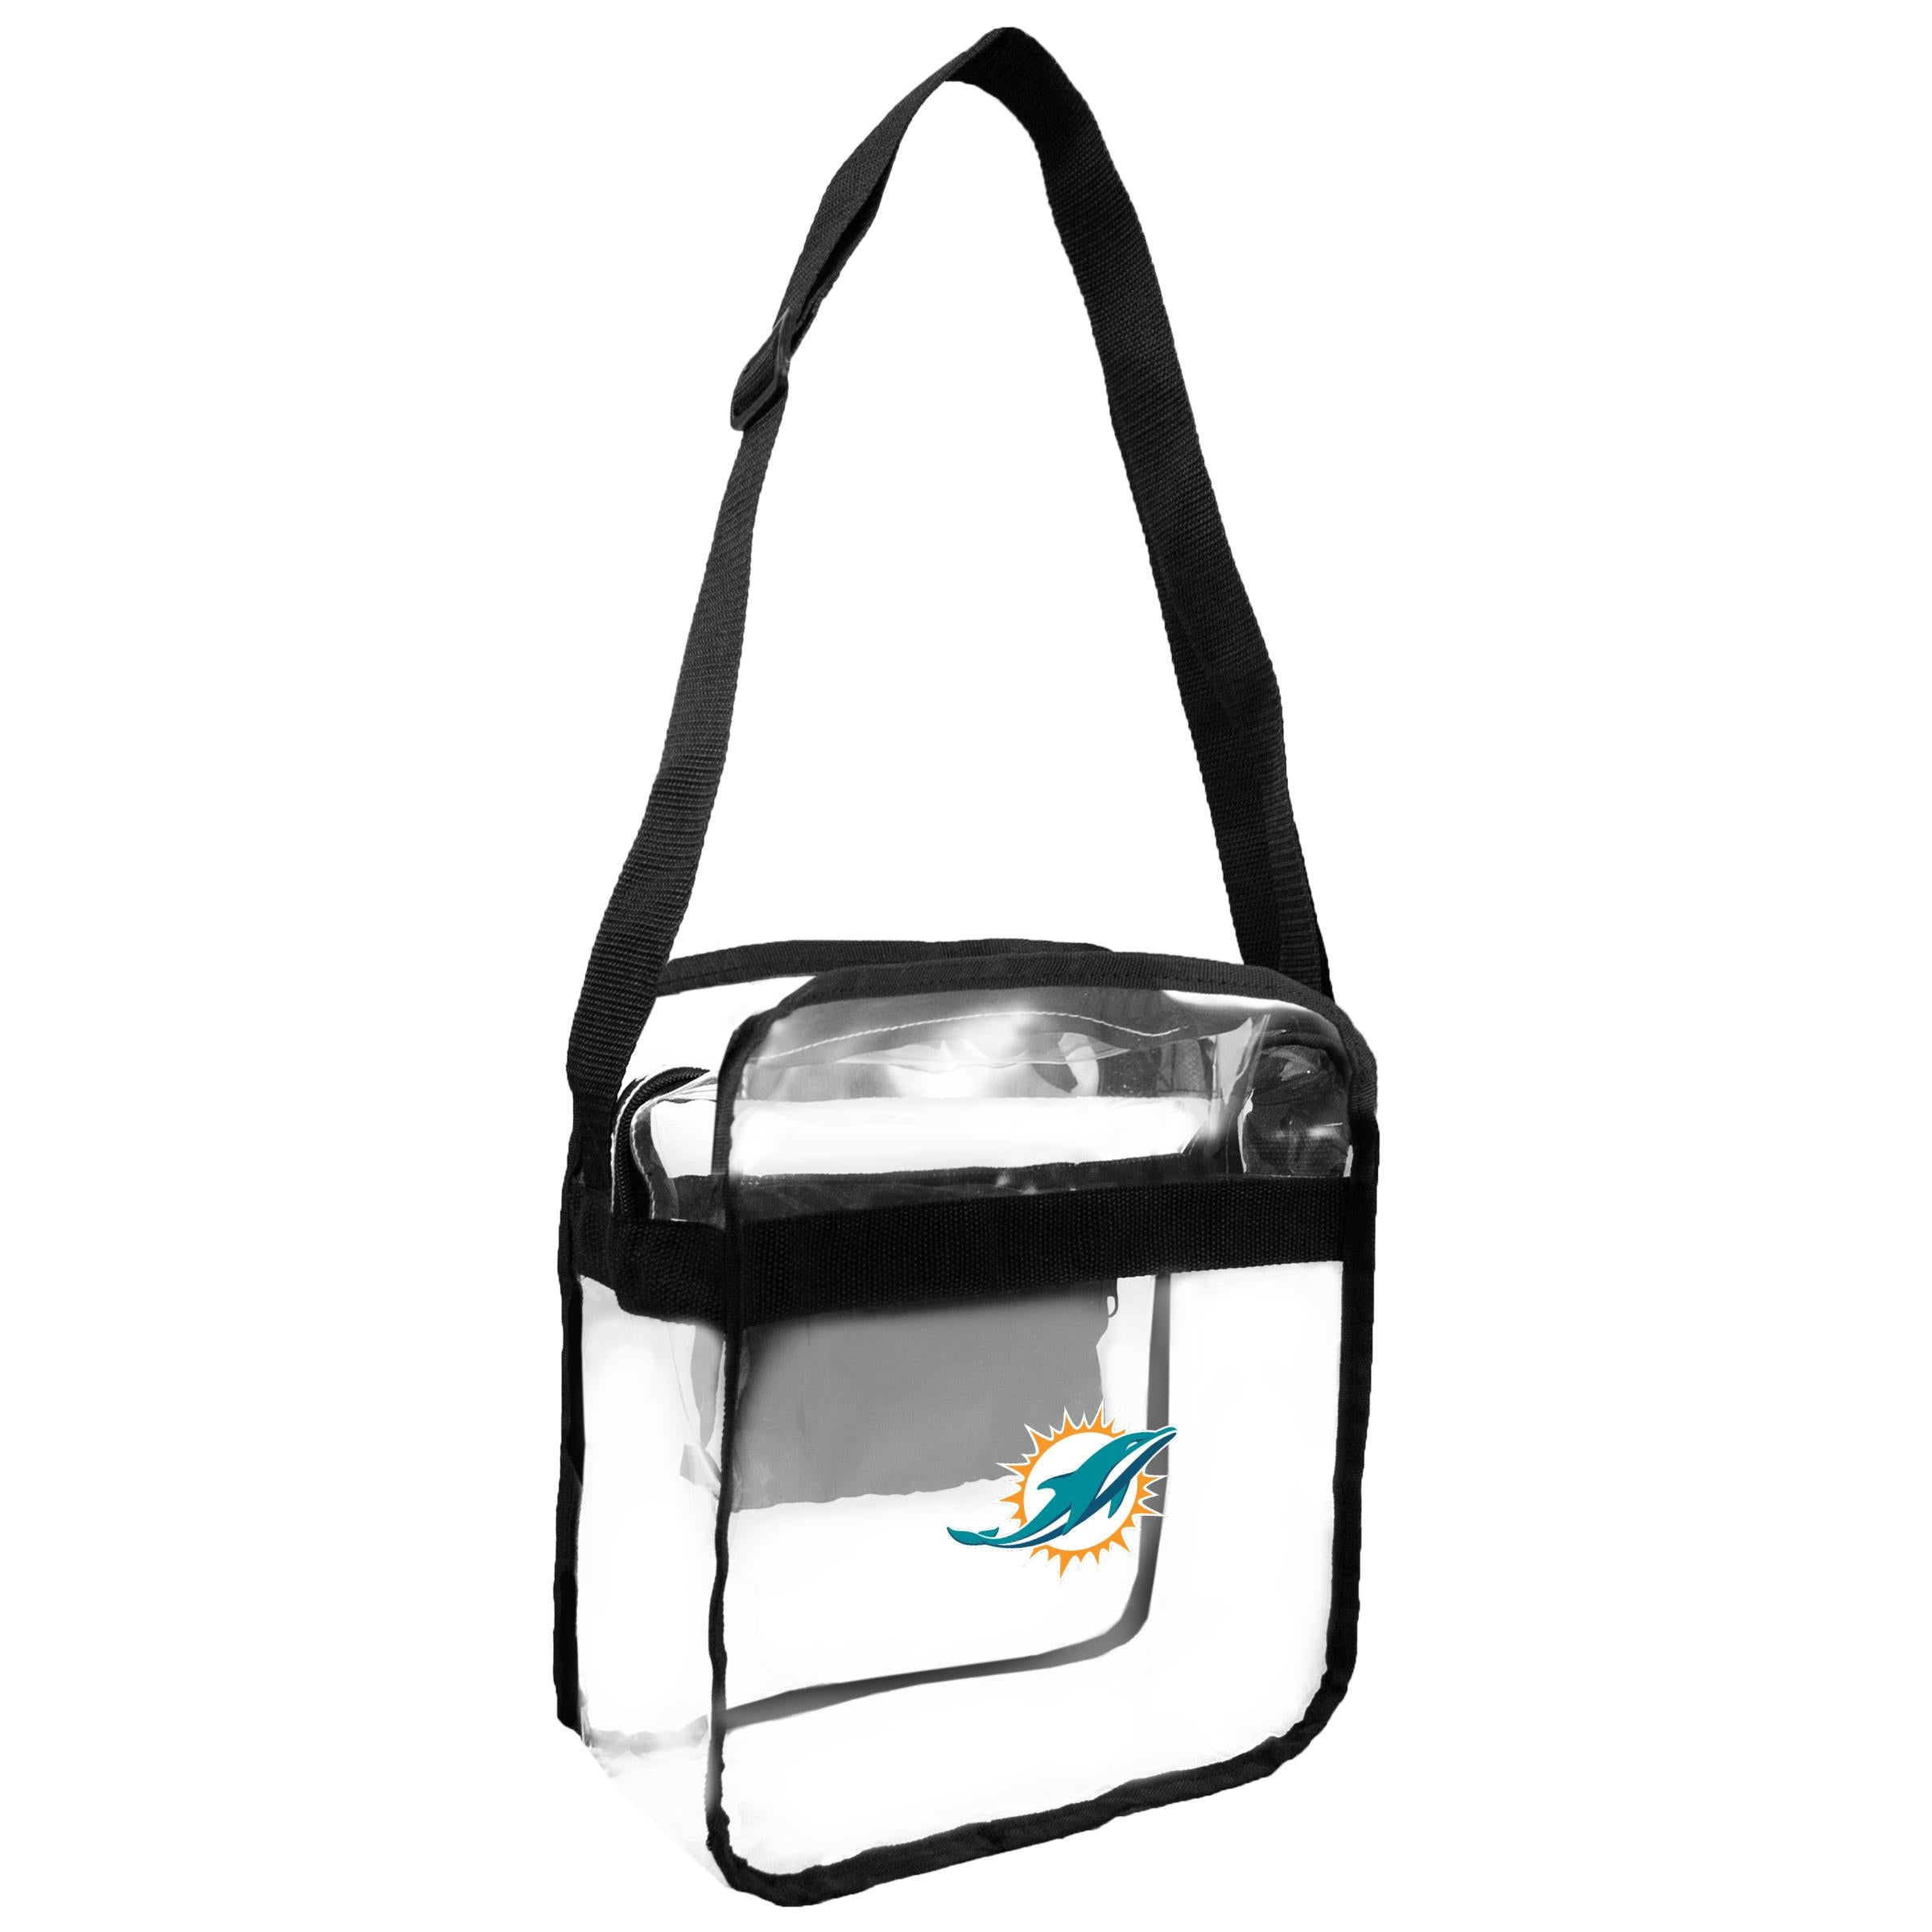 Miami Dolphins Clear Carryall Crossbody